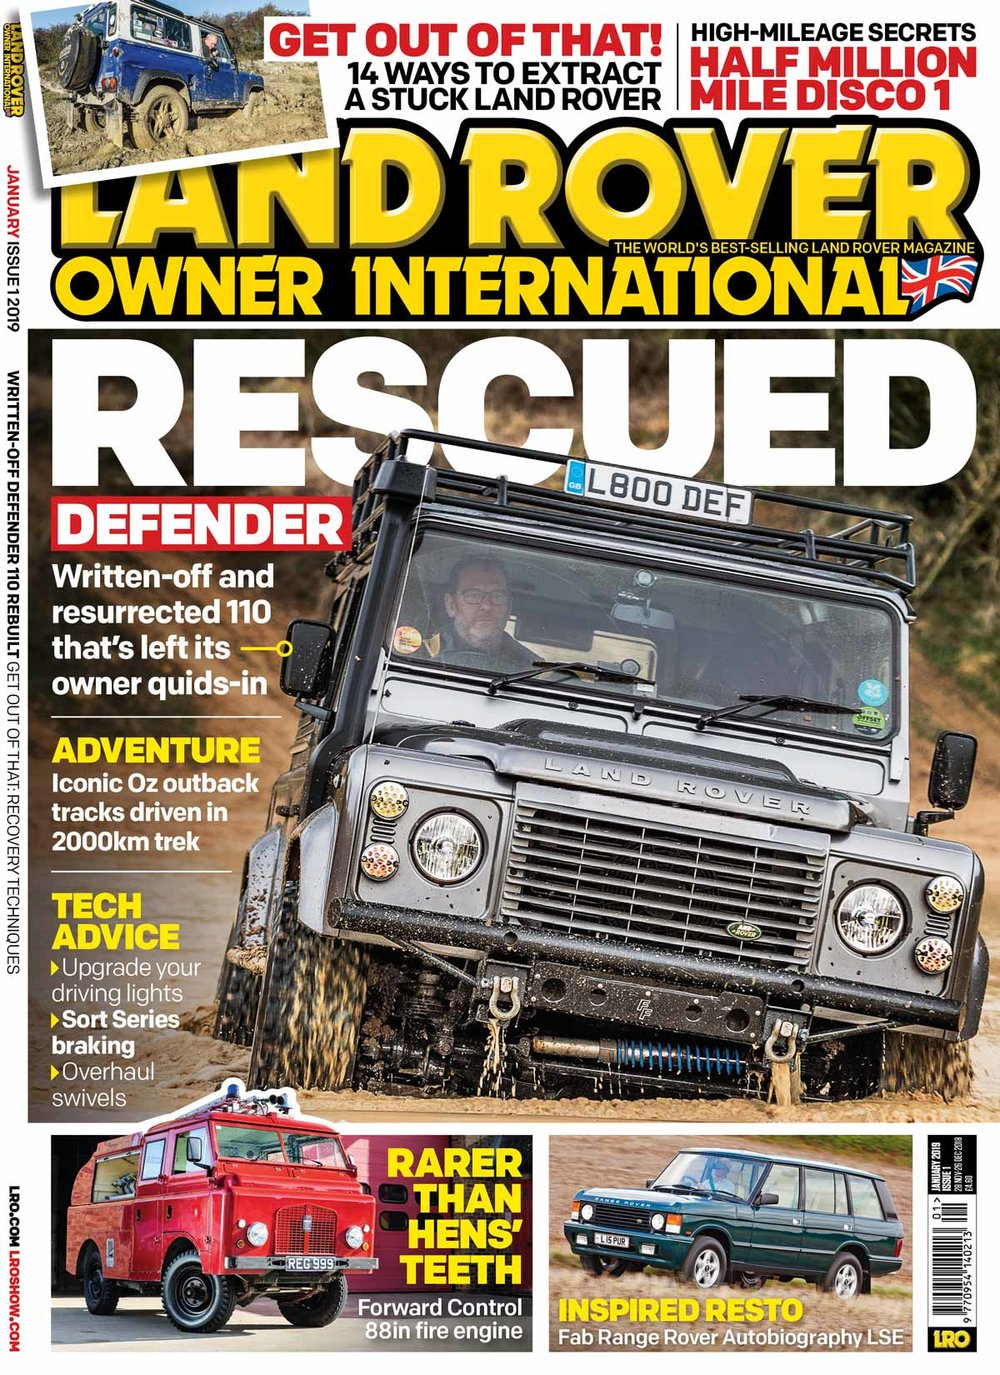 LRO January 2019 cover